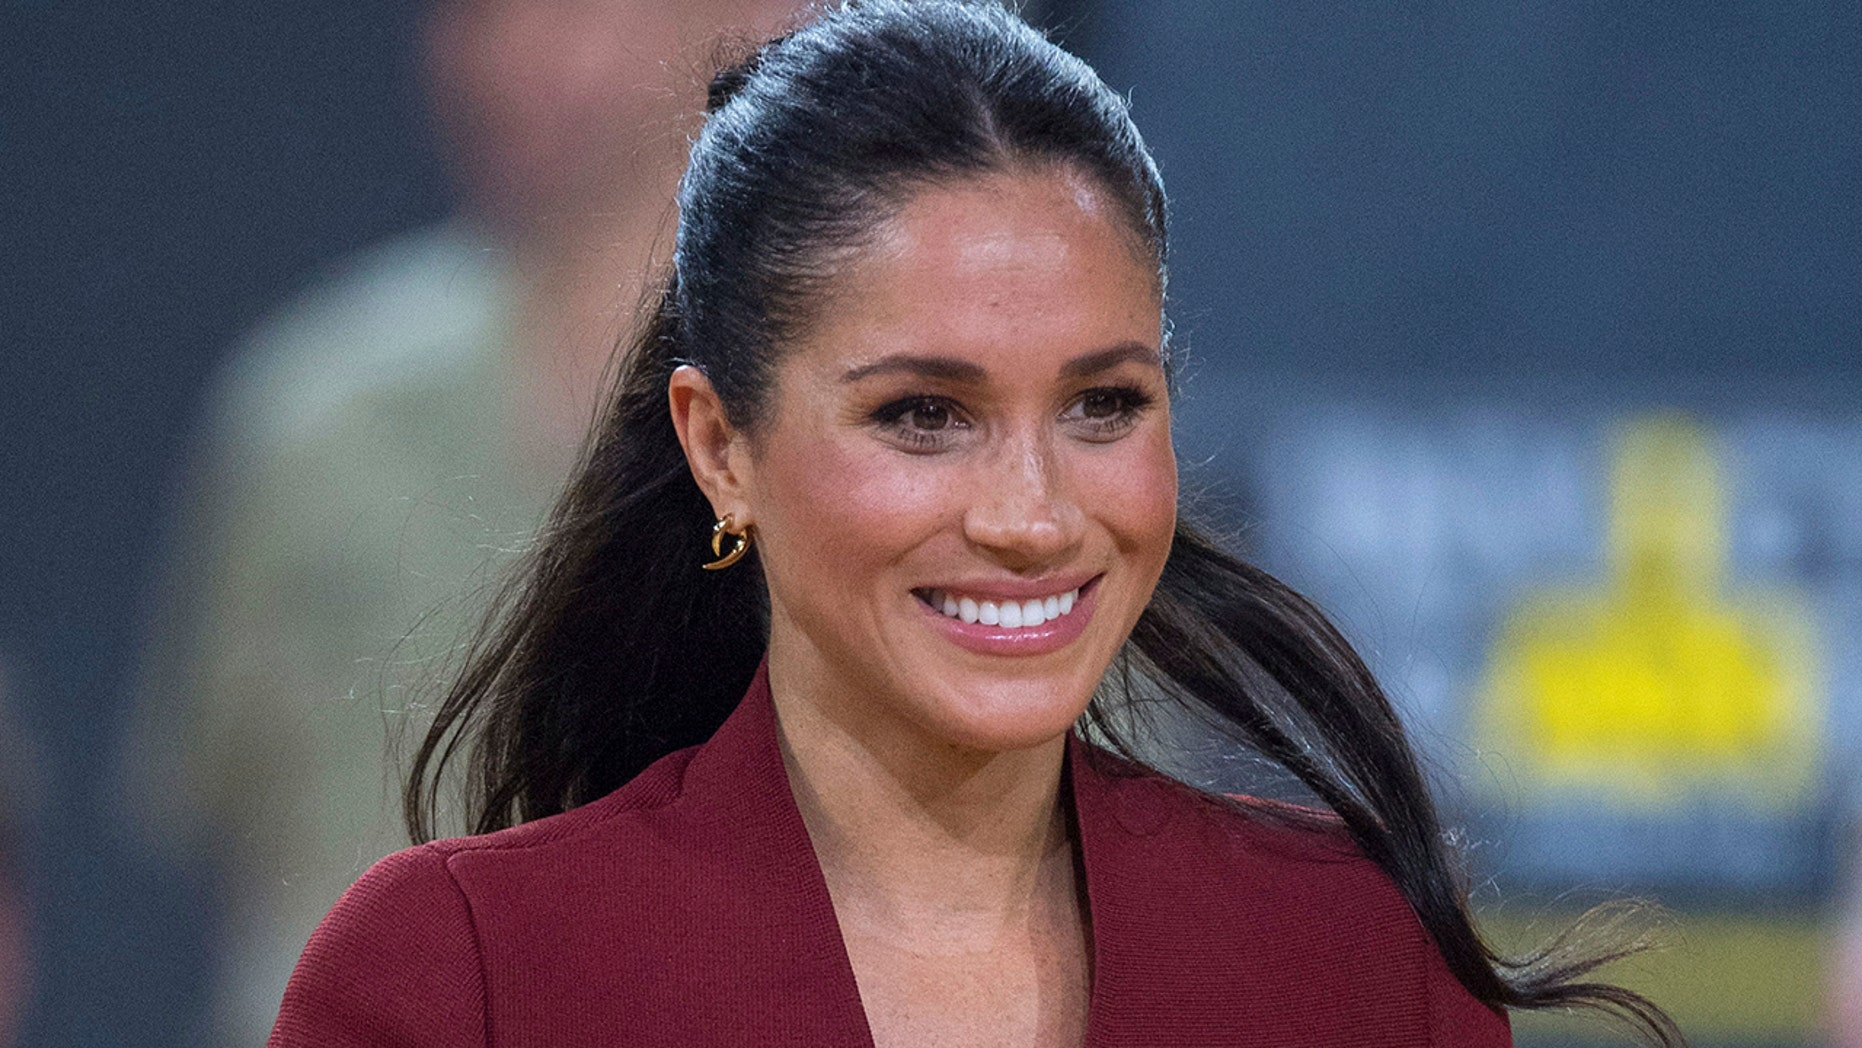 Britain's Meghan, Duchess of Sussex, after watching the wheelchair basketball final at the Invictus Games in Sydney, Australia, Saturday, Oct. 27, 2018. (Associated Press)